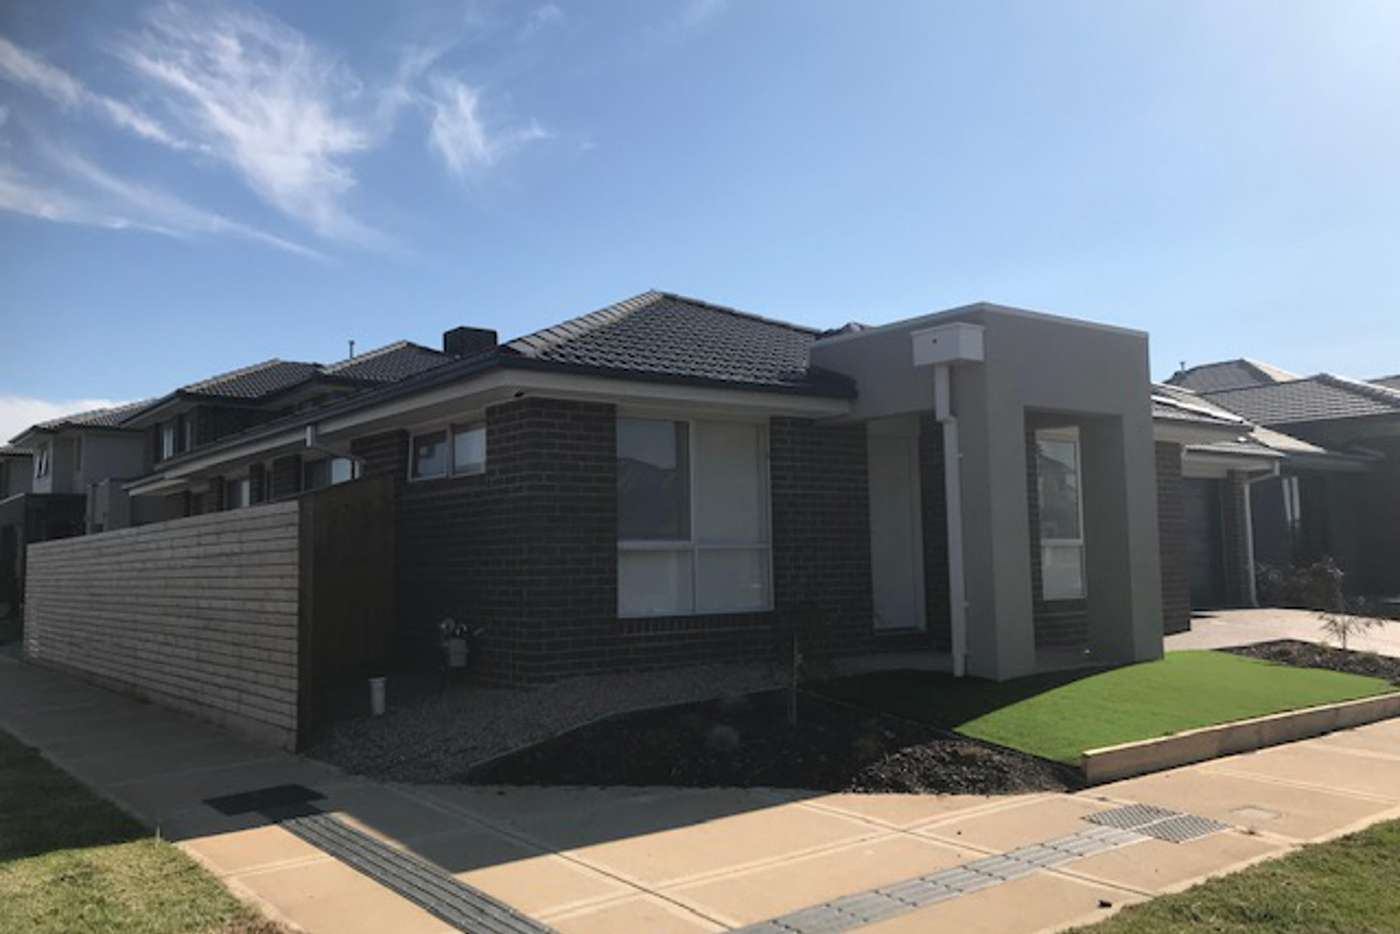 Seventh view of Homely house listing, 2 Weighbridge Avenue, Wyndham Vale VIC 3024